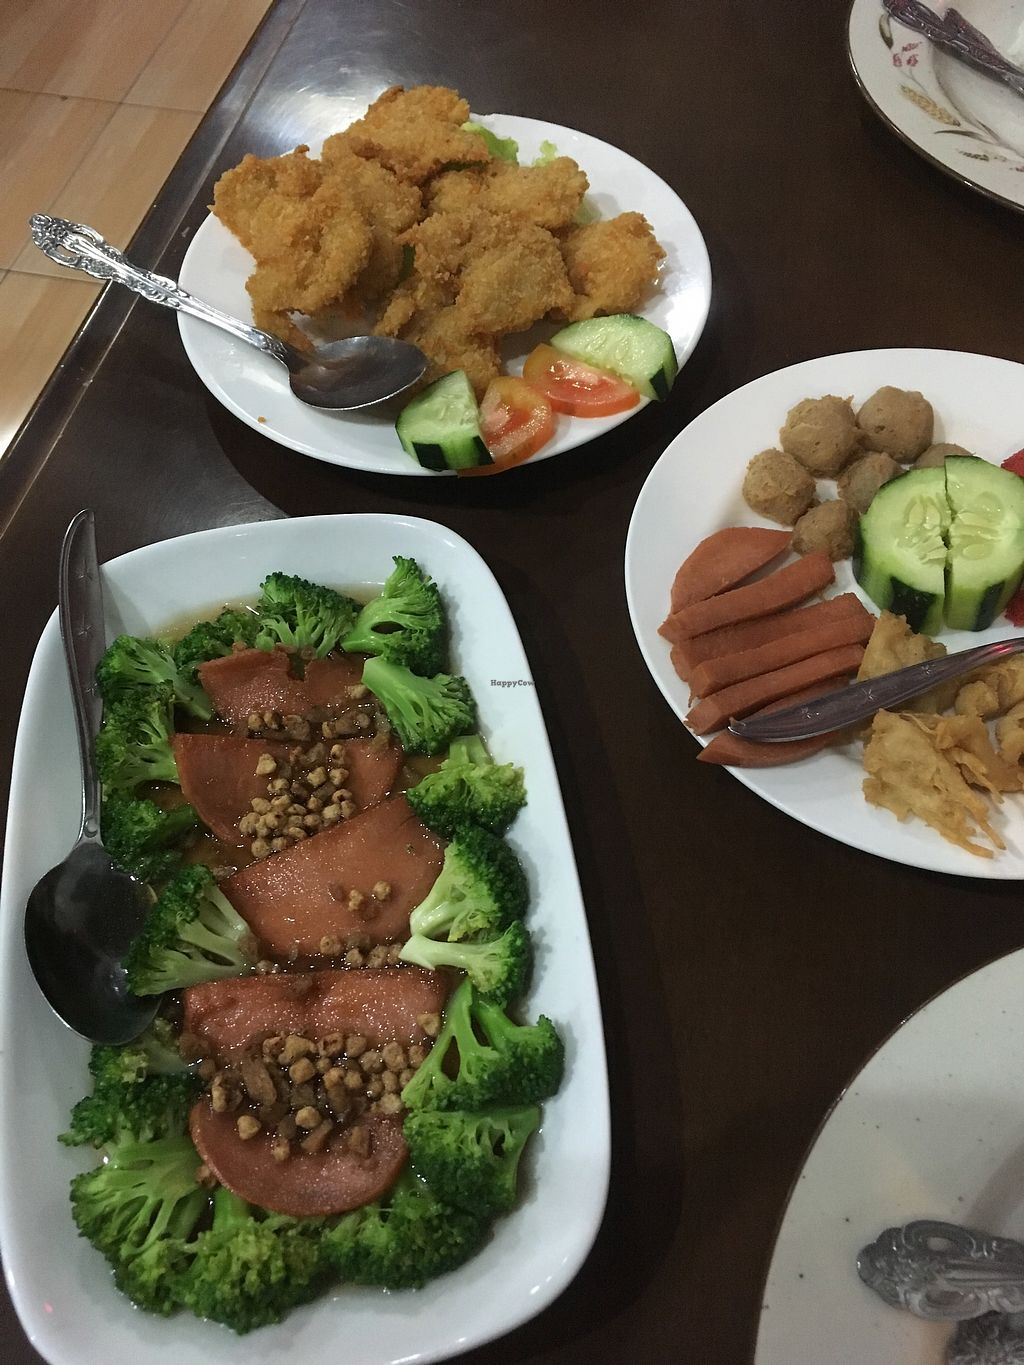 """Photo of I Love Vegetarian Food - De Ra Sa  by <a href=""""/members/profile/jojoinbrighton"""">jojoinbrighton</a> <br/>Mock meats galore <br/> August 6, 2017  - <a href='/contact/abuse/image/32847/289648'>Report</a>"""